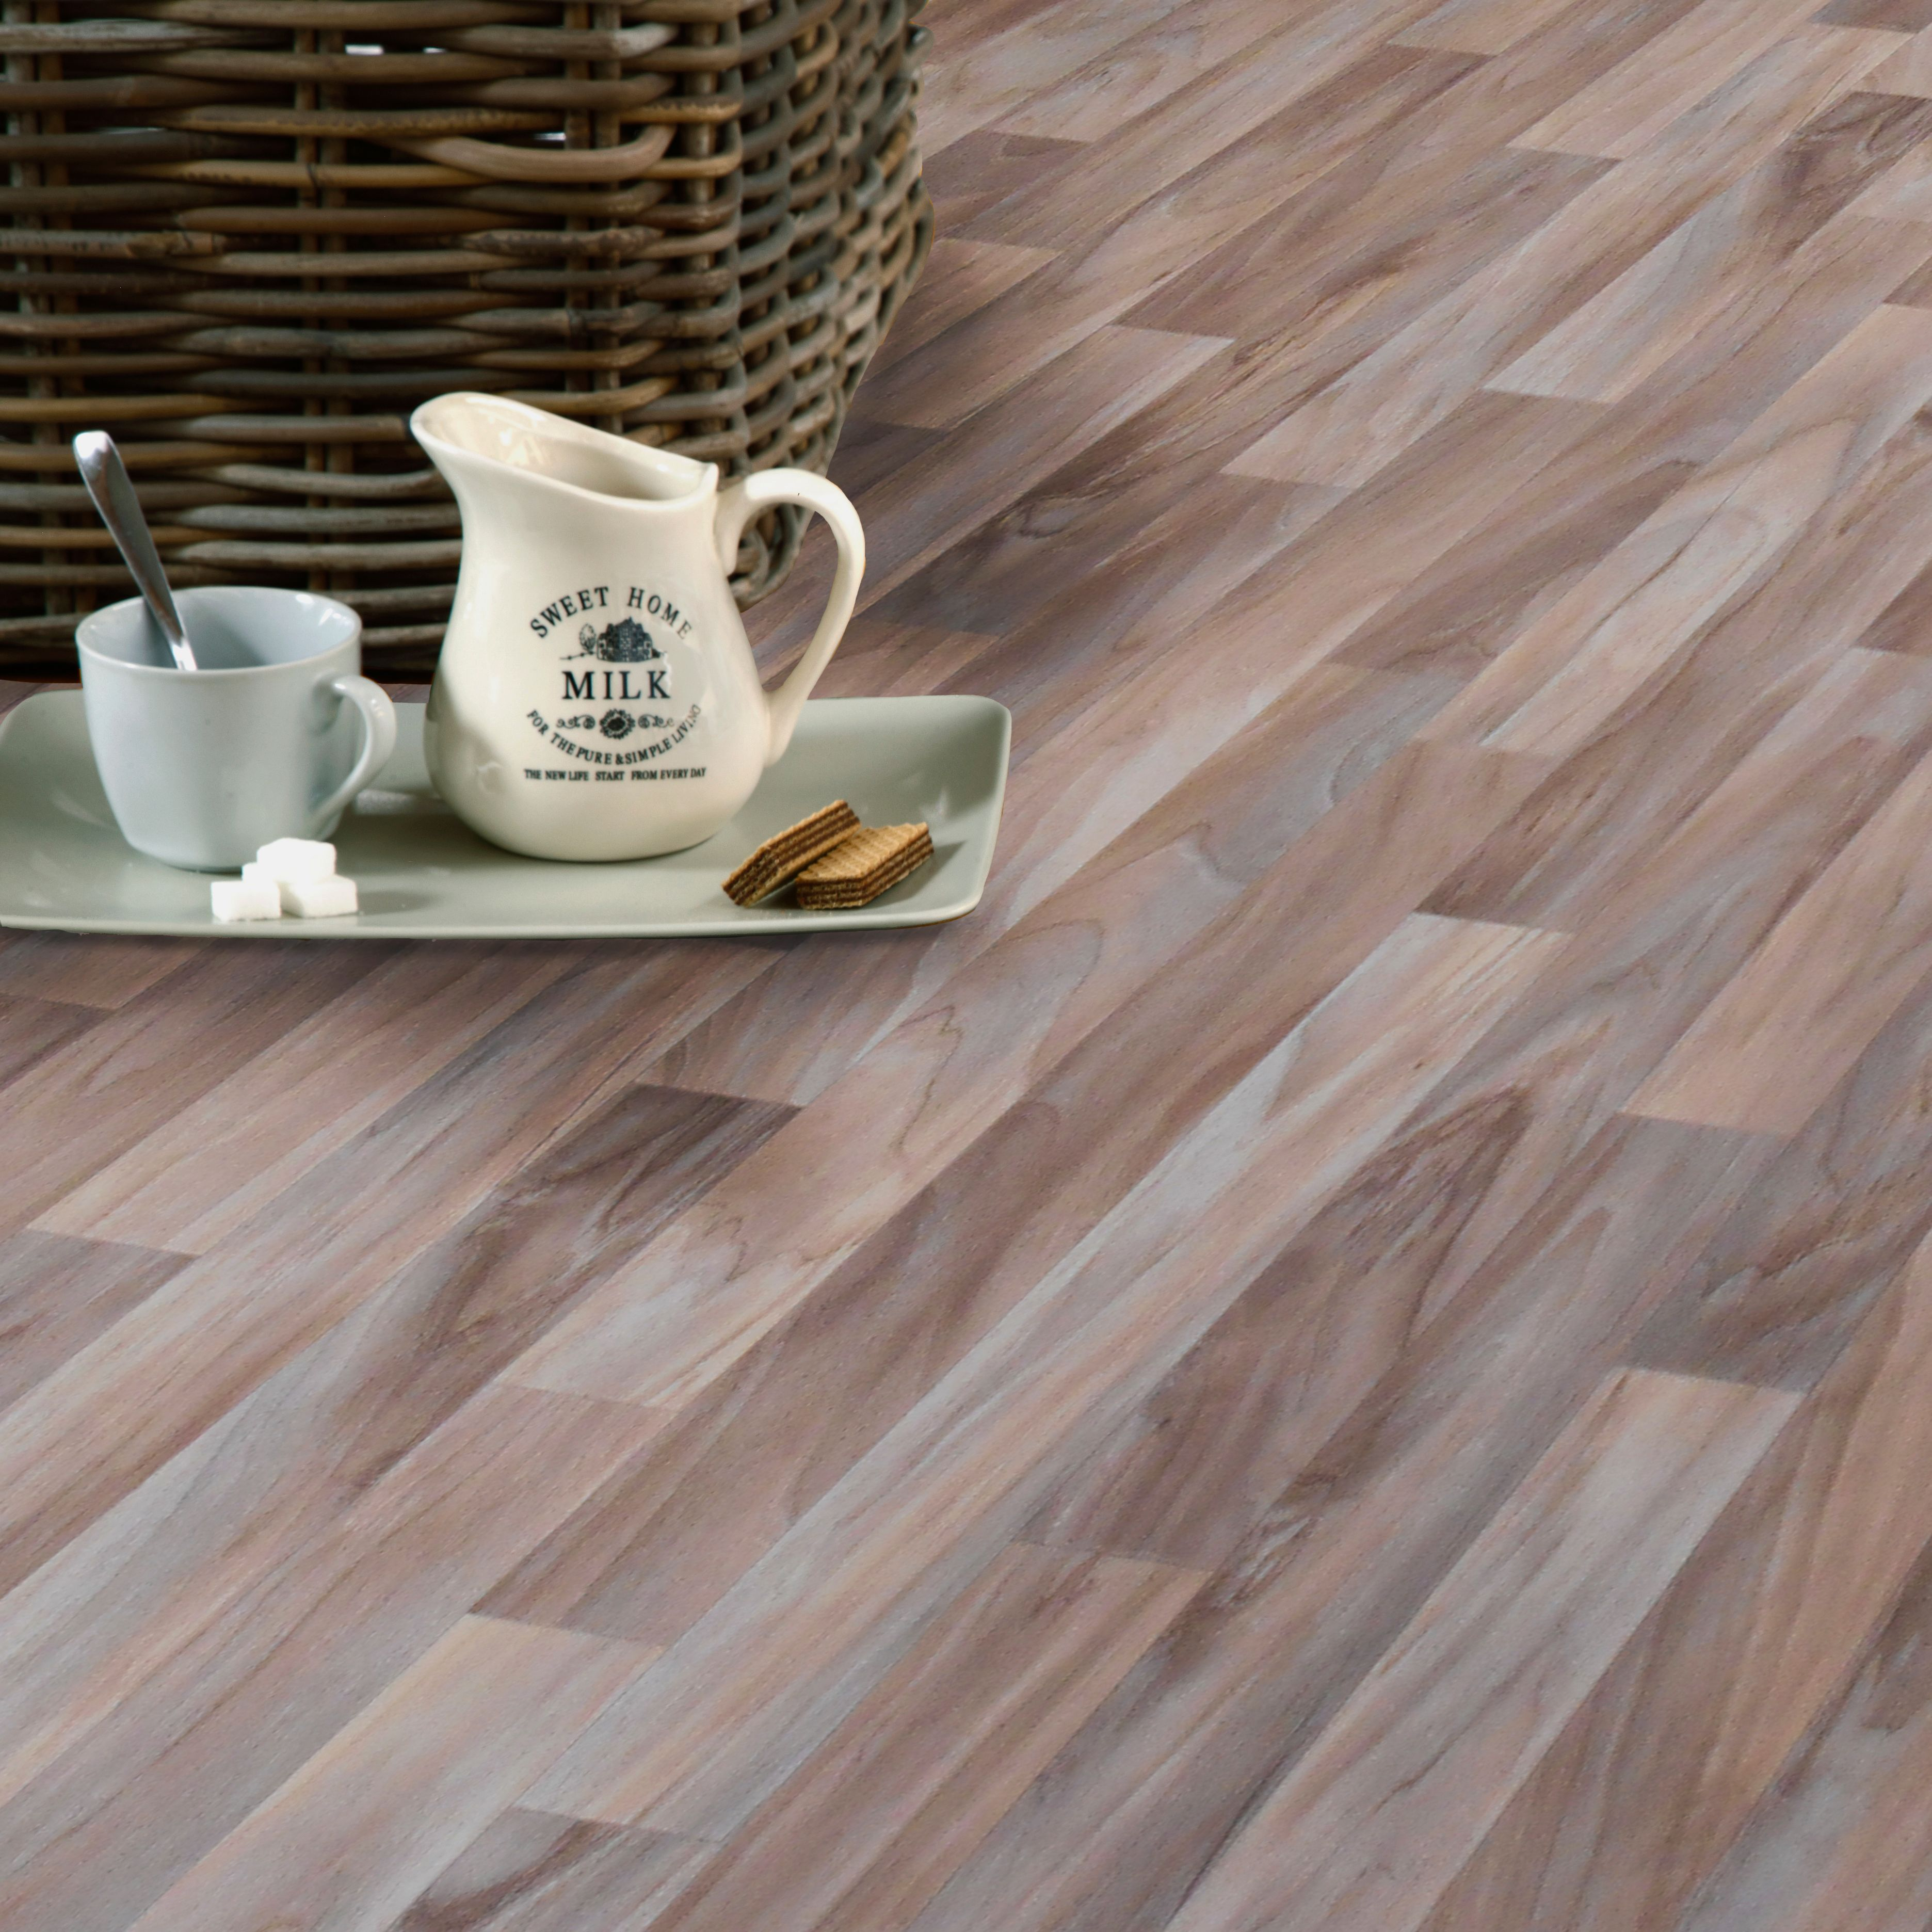 Natural wood effect vinyl 4m sheet departments diy at bq dog natural wood effect vinyl flooring 4 m bq for all your home and garden supplies and advice on all the latest diy trends dailygadgetfo Choice Image